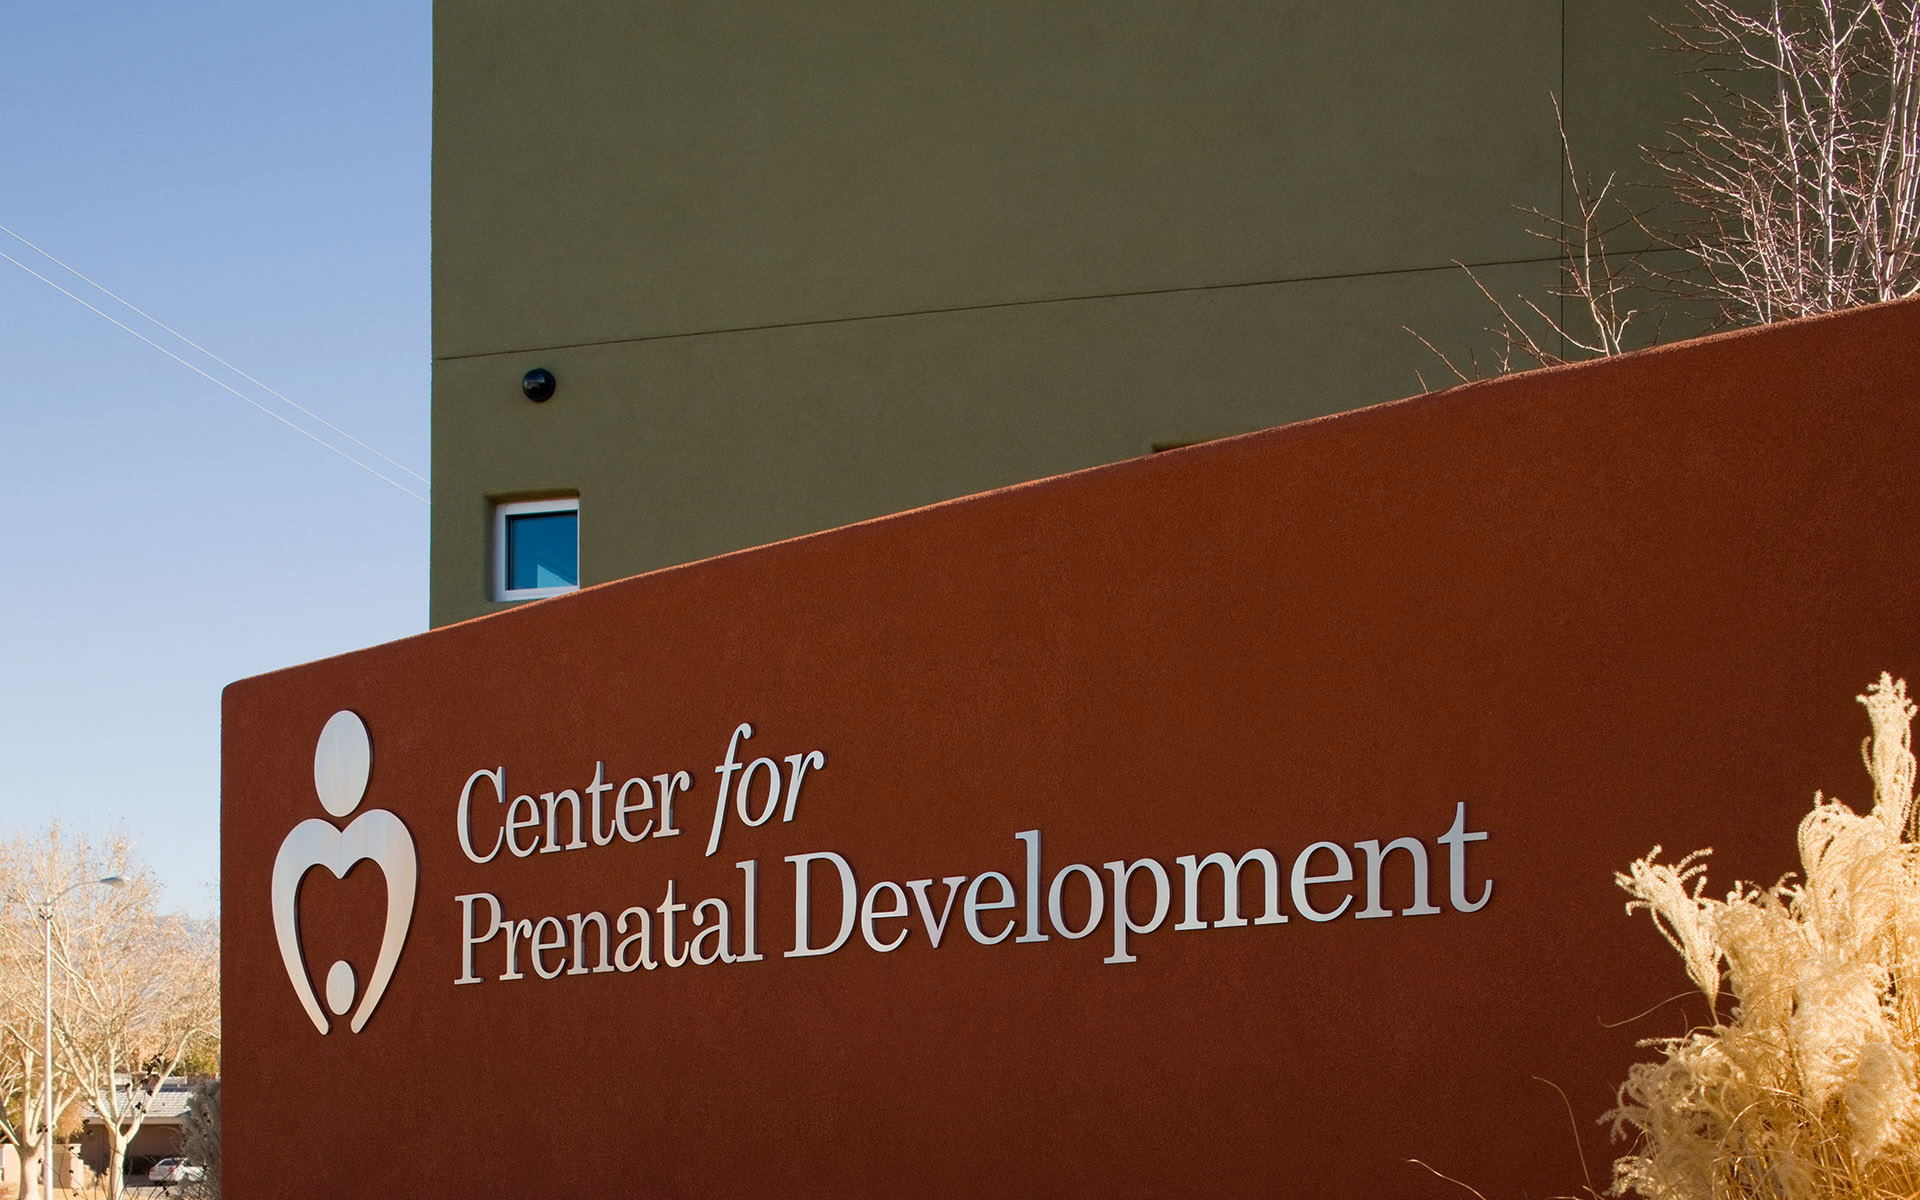 Center for Prenatal Development